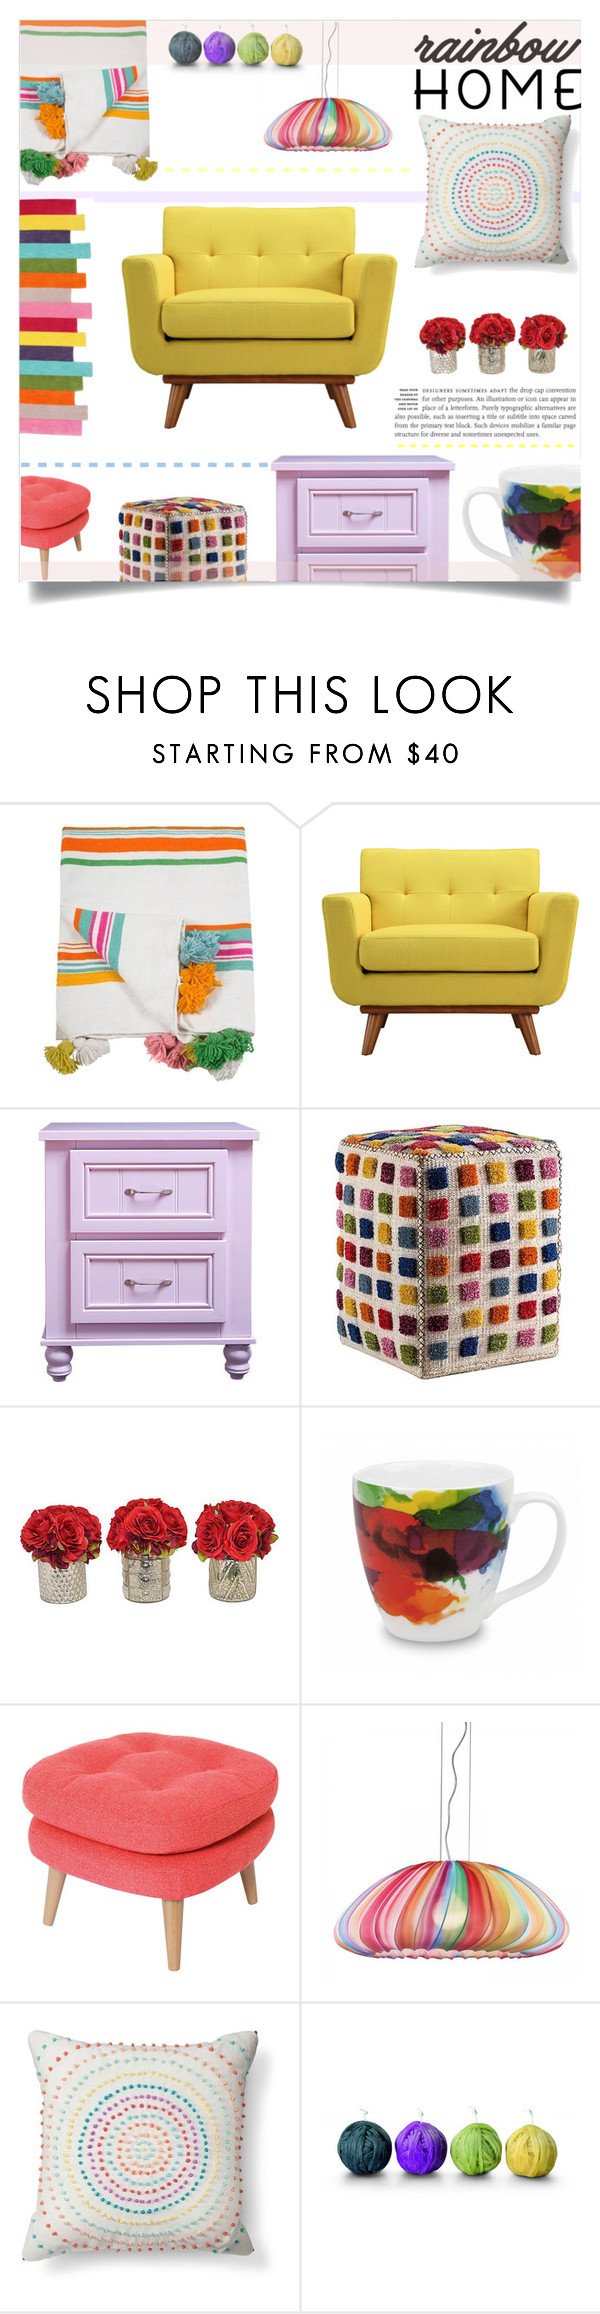 """""""Untitled #540"""" by millilolly ❤ liked on Polyvore featuring interior, interiors, interior design, home, home decor, interior decorating, Indigo&Lavender, Dot & Bo, The French Bee and Könitz"""